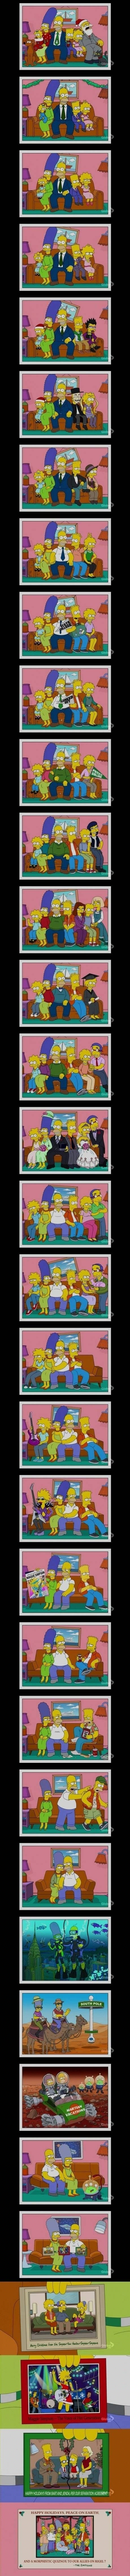 """The Simpsons Grow Up (...) in the form of 35 family greeting cards."""